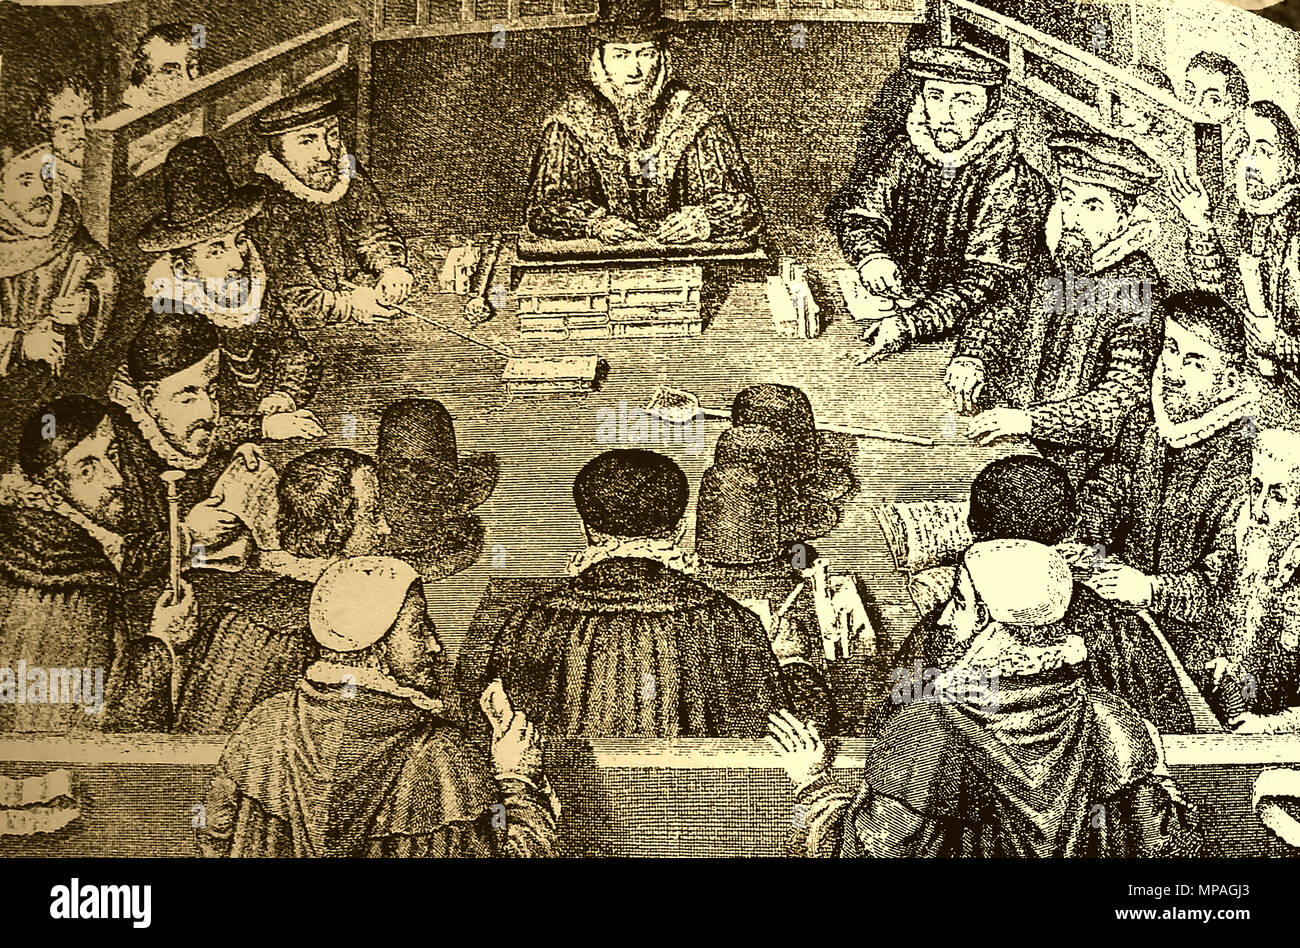 1540's in England. An assembly of the Court of Wards & Liveries (Reign of Henry VIII) - Stock Image